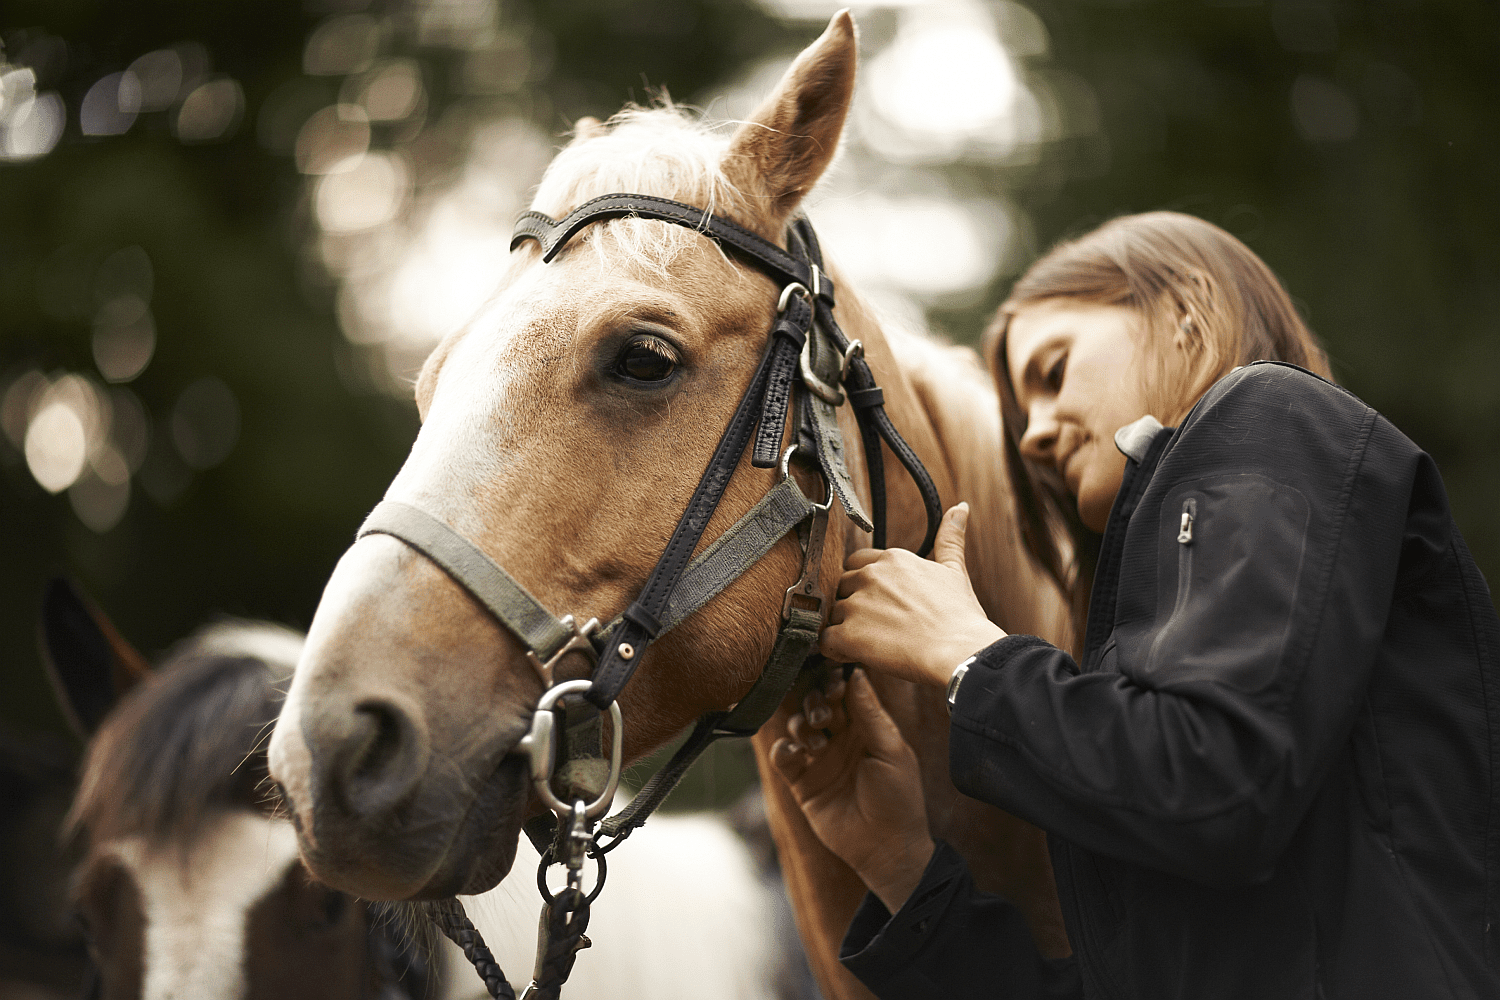 Girl doing up bridle buckle on palomino horse.